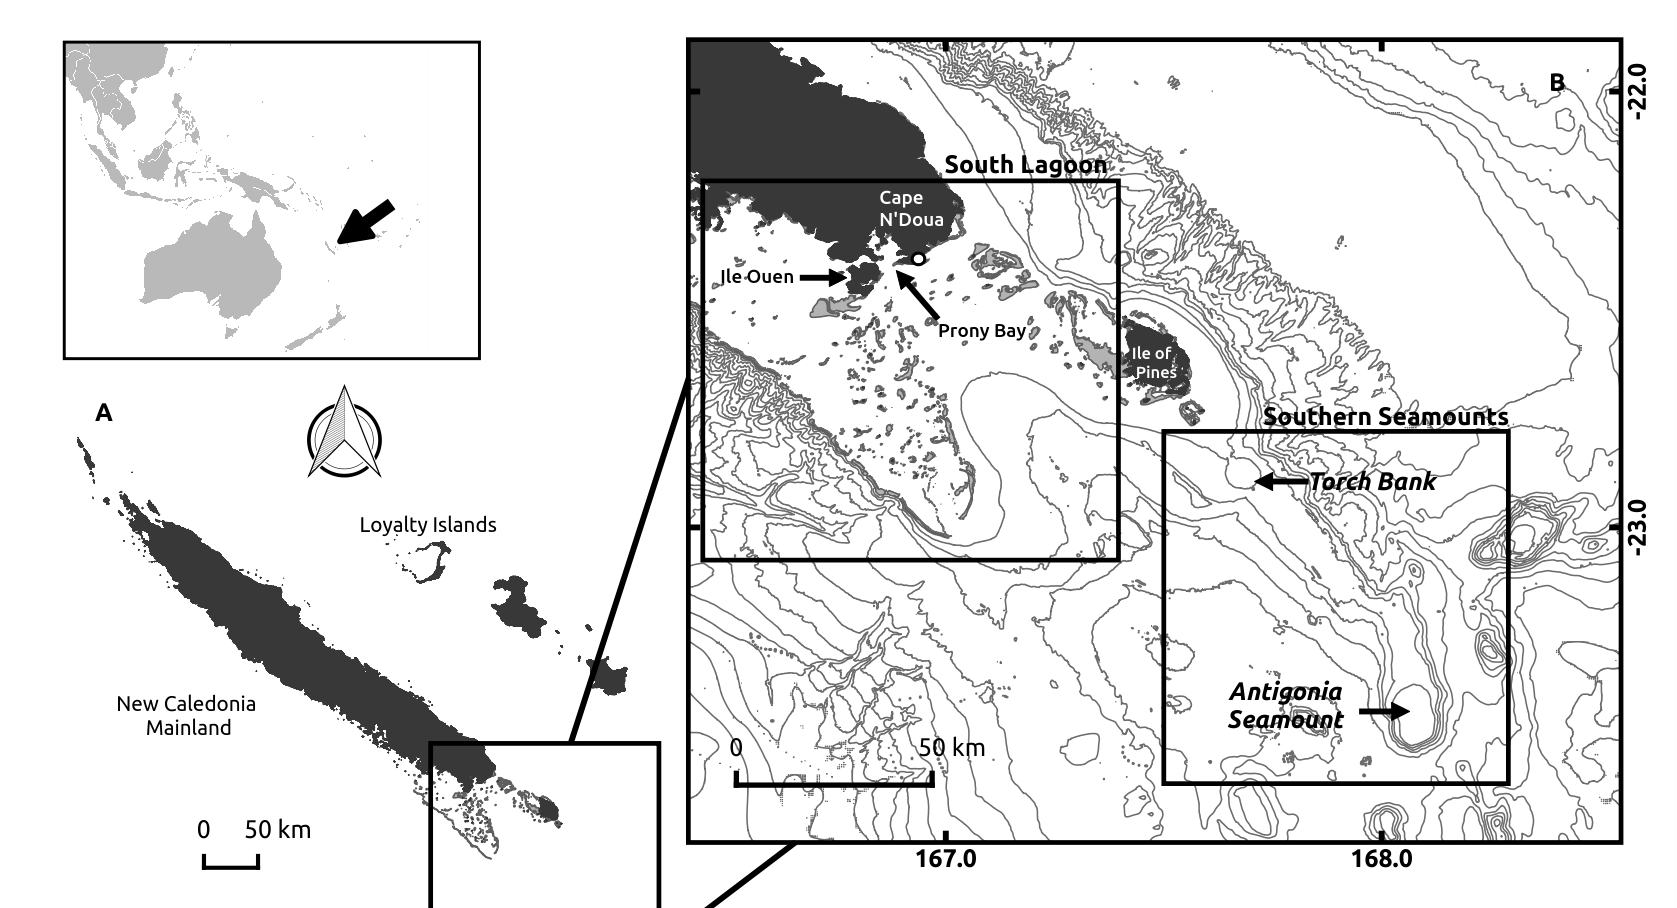 Map of New Caledonia and our study areas: the South Lagoon and the Southern Seamounts. Light grey lines represent 200m isobaths. Land is shown in black and reefs in grey.